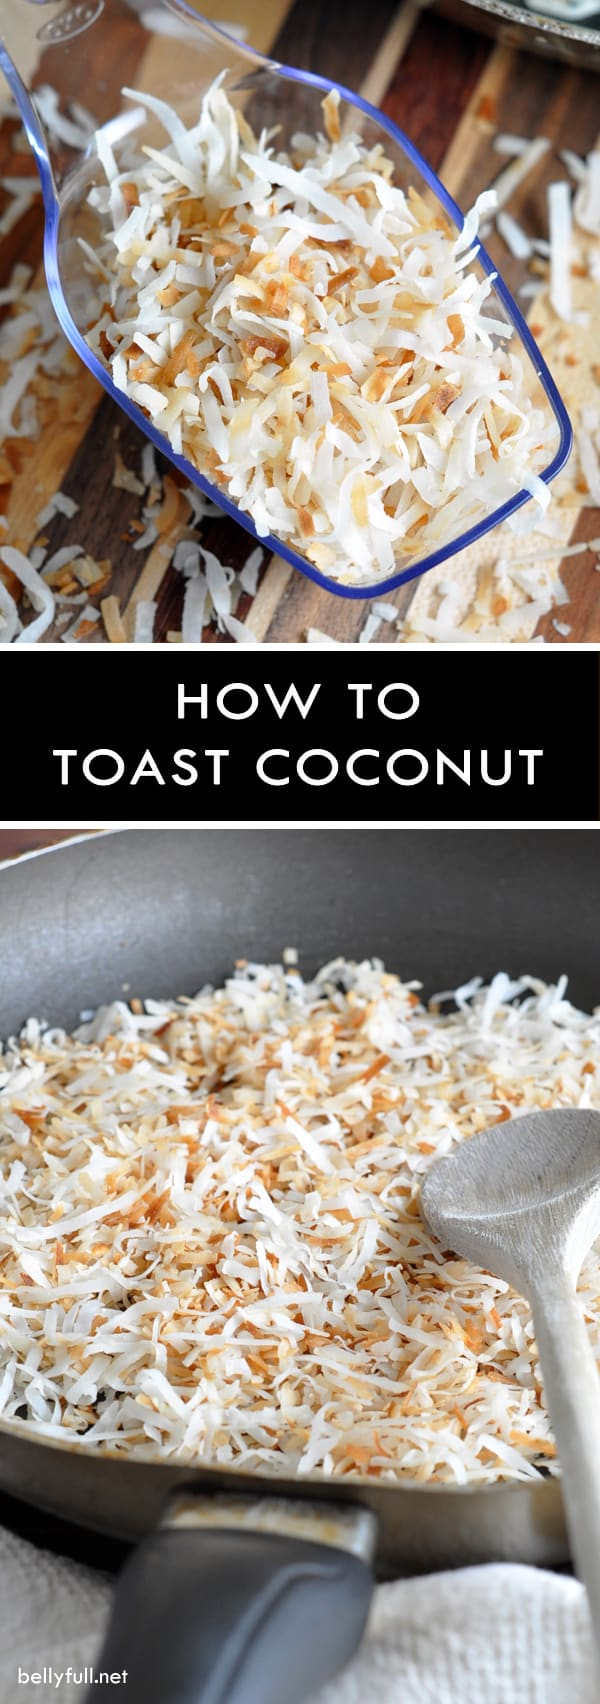 Toasting coconut lends a richer nuttier taste, crunchier texture, and a beautiful golden hue that makes your coconut pie, cake, bars, or macaroons pop!